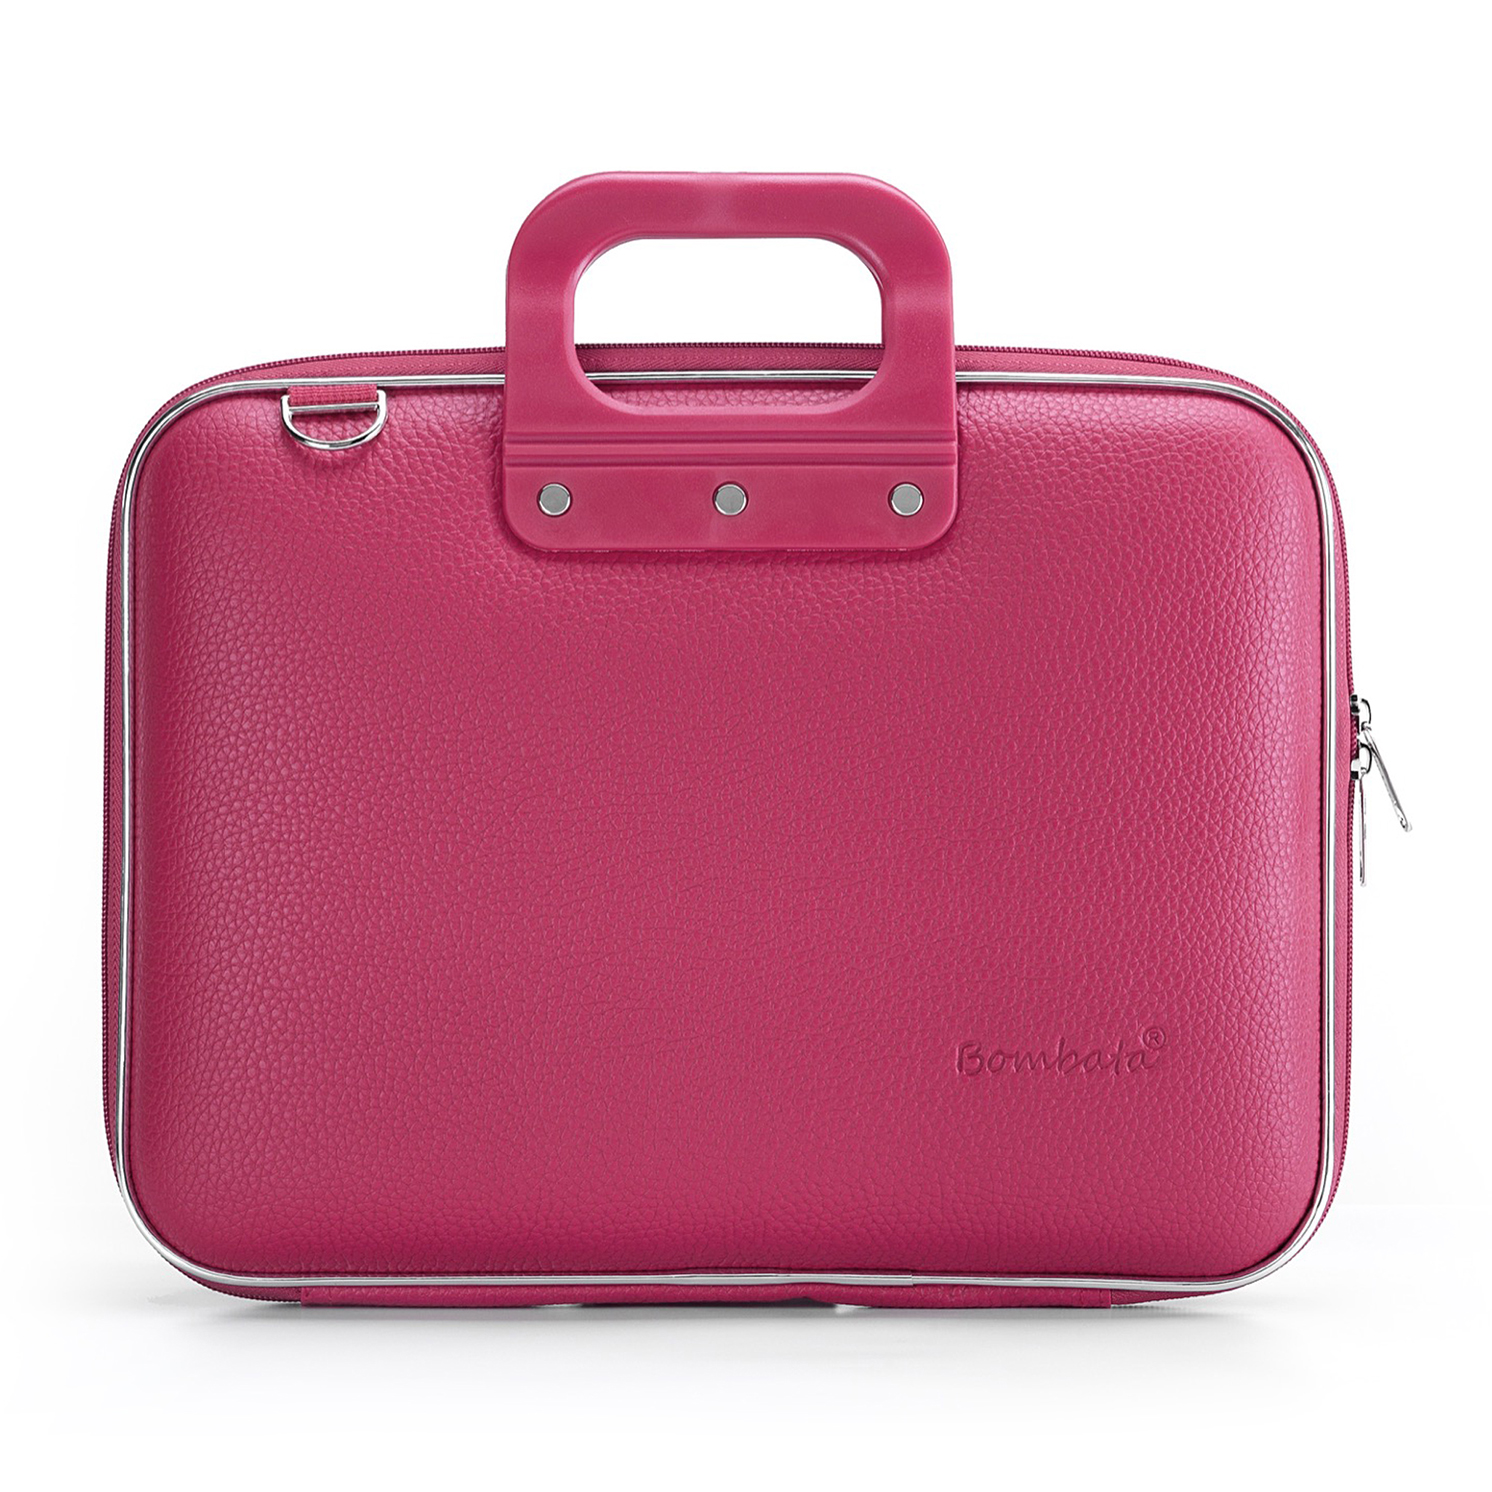 Bombata – Pink Medio Classic 13″ Laptop Case/Bag with Shoulder Strap